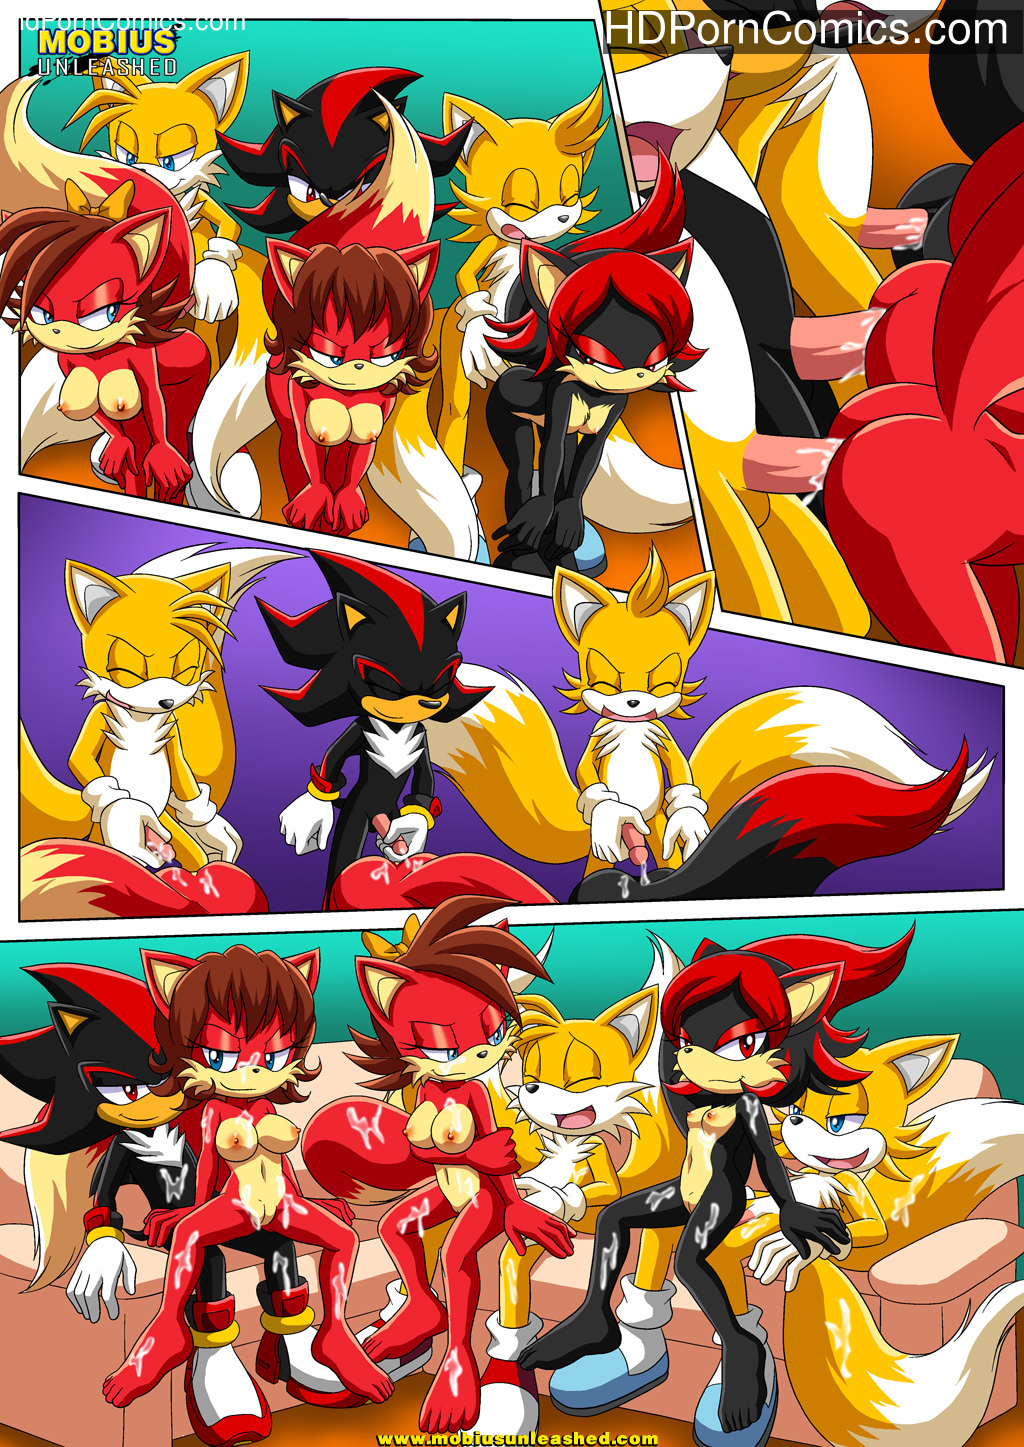 The Prower Family Affair – Foxy Black (Sonic The Hedgehog) – Porncomics free Porn Comic